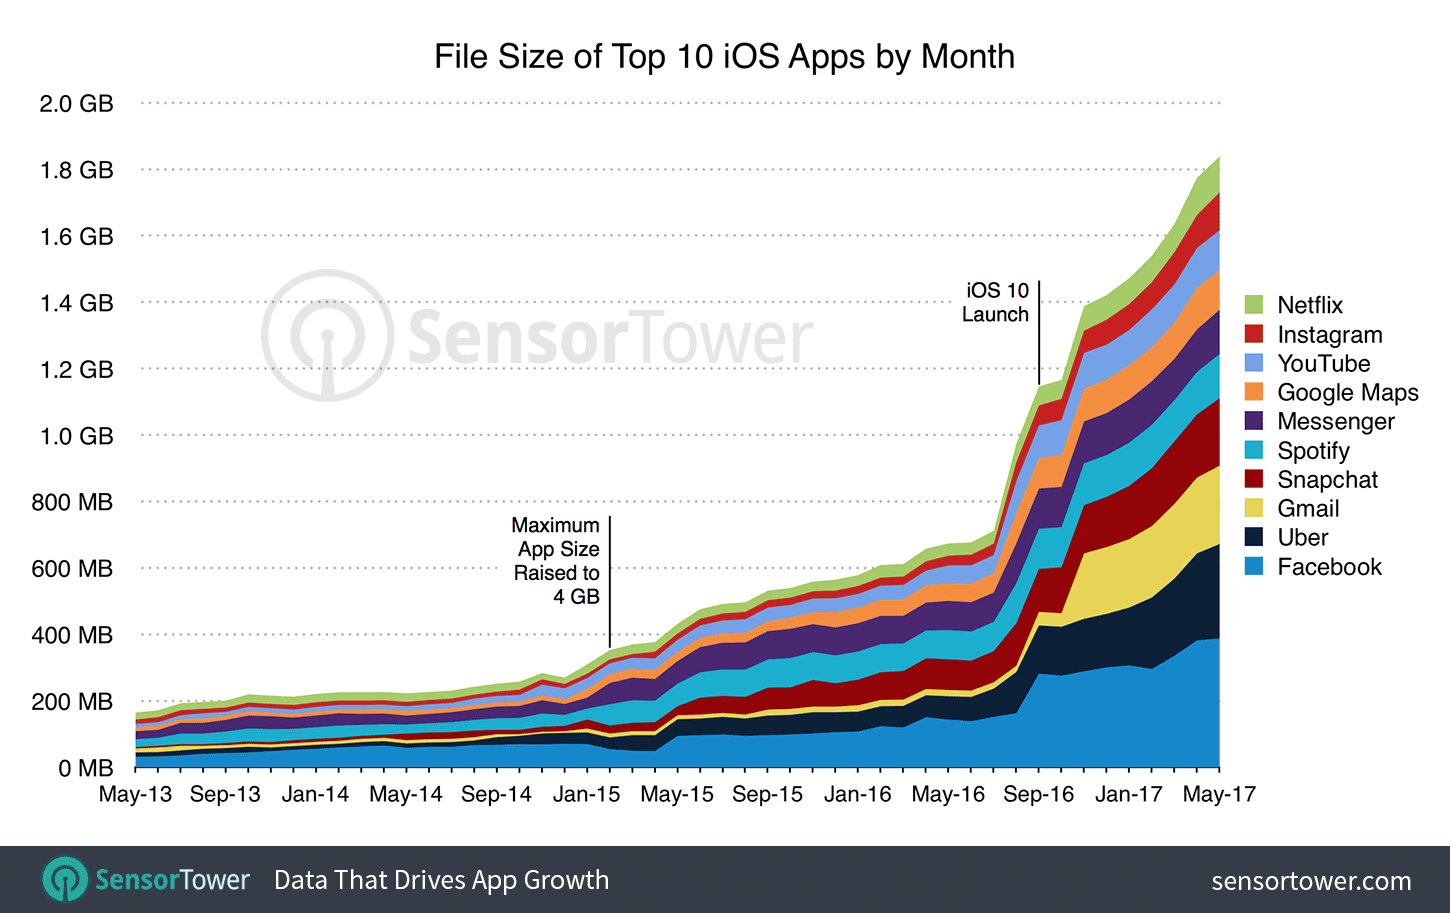 top-10-ios-apps-size-by-month